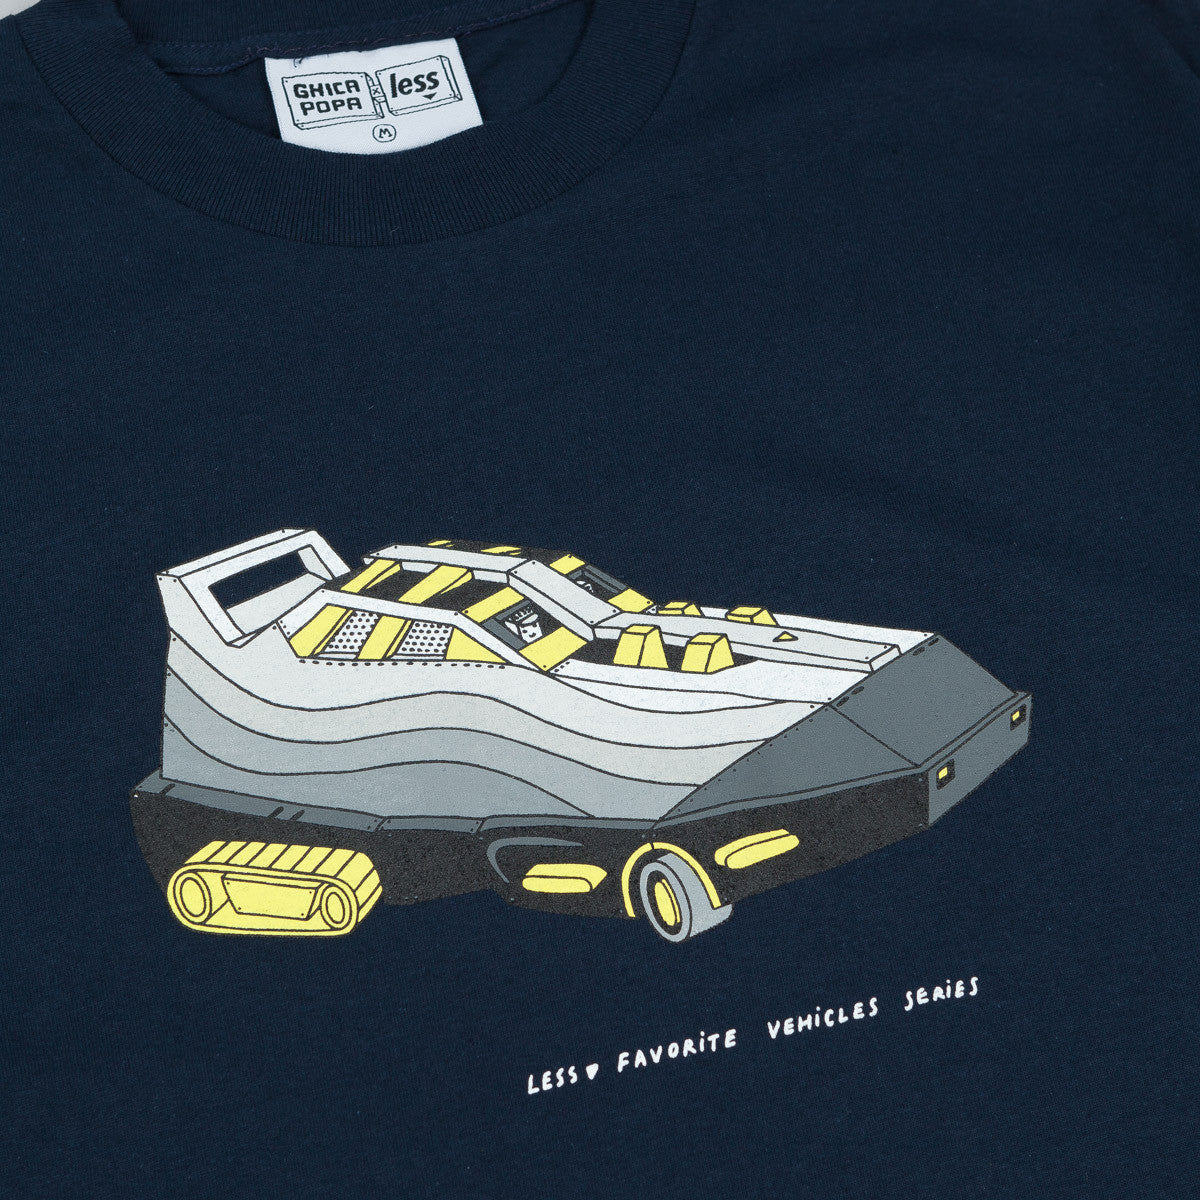 Less x Ghica Popa Vehicles Series Max 95 T-Shirt - Navy